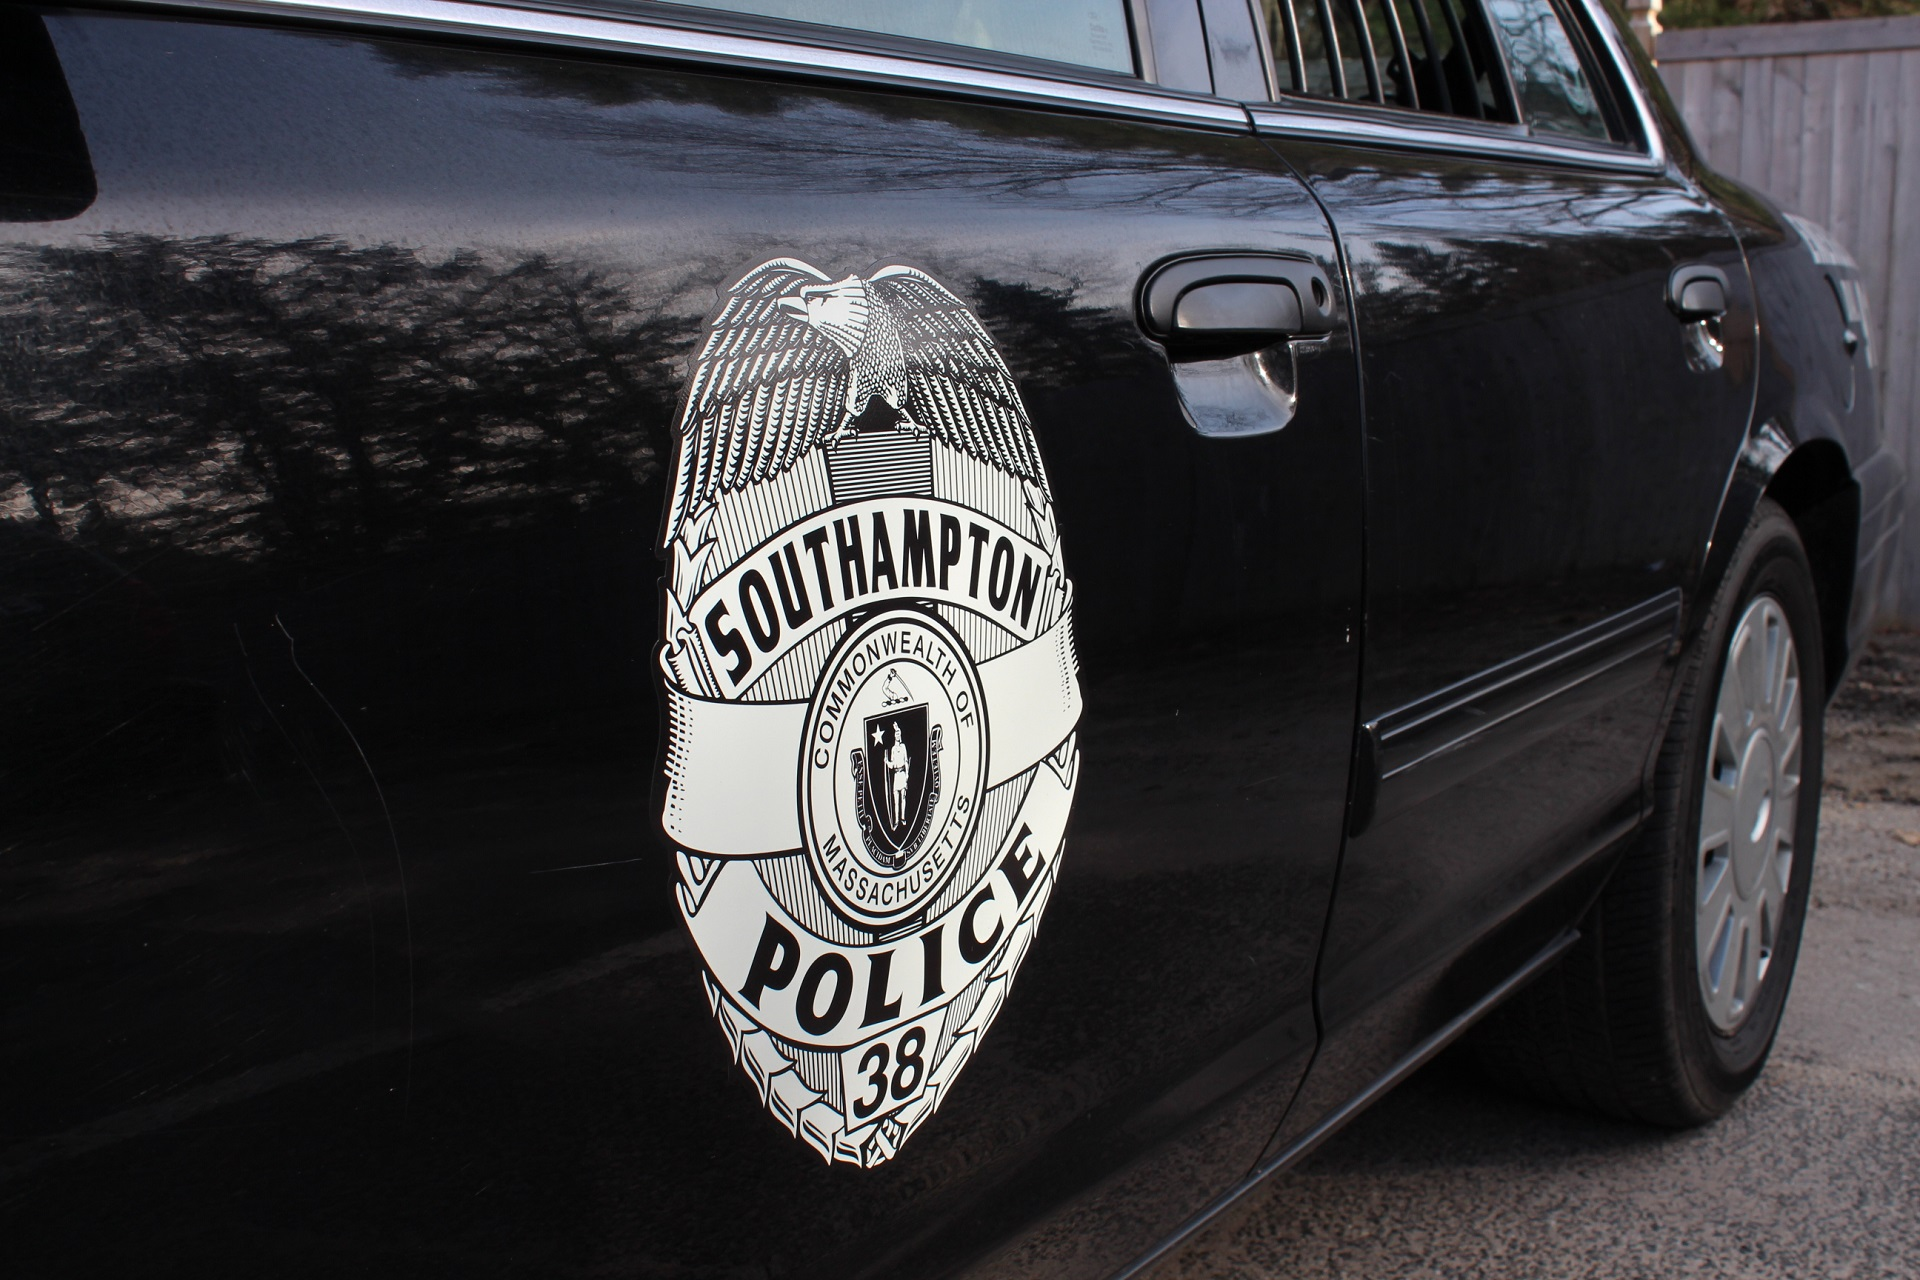 Southampton_Police_Vehicle2_1524852675837.jpg